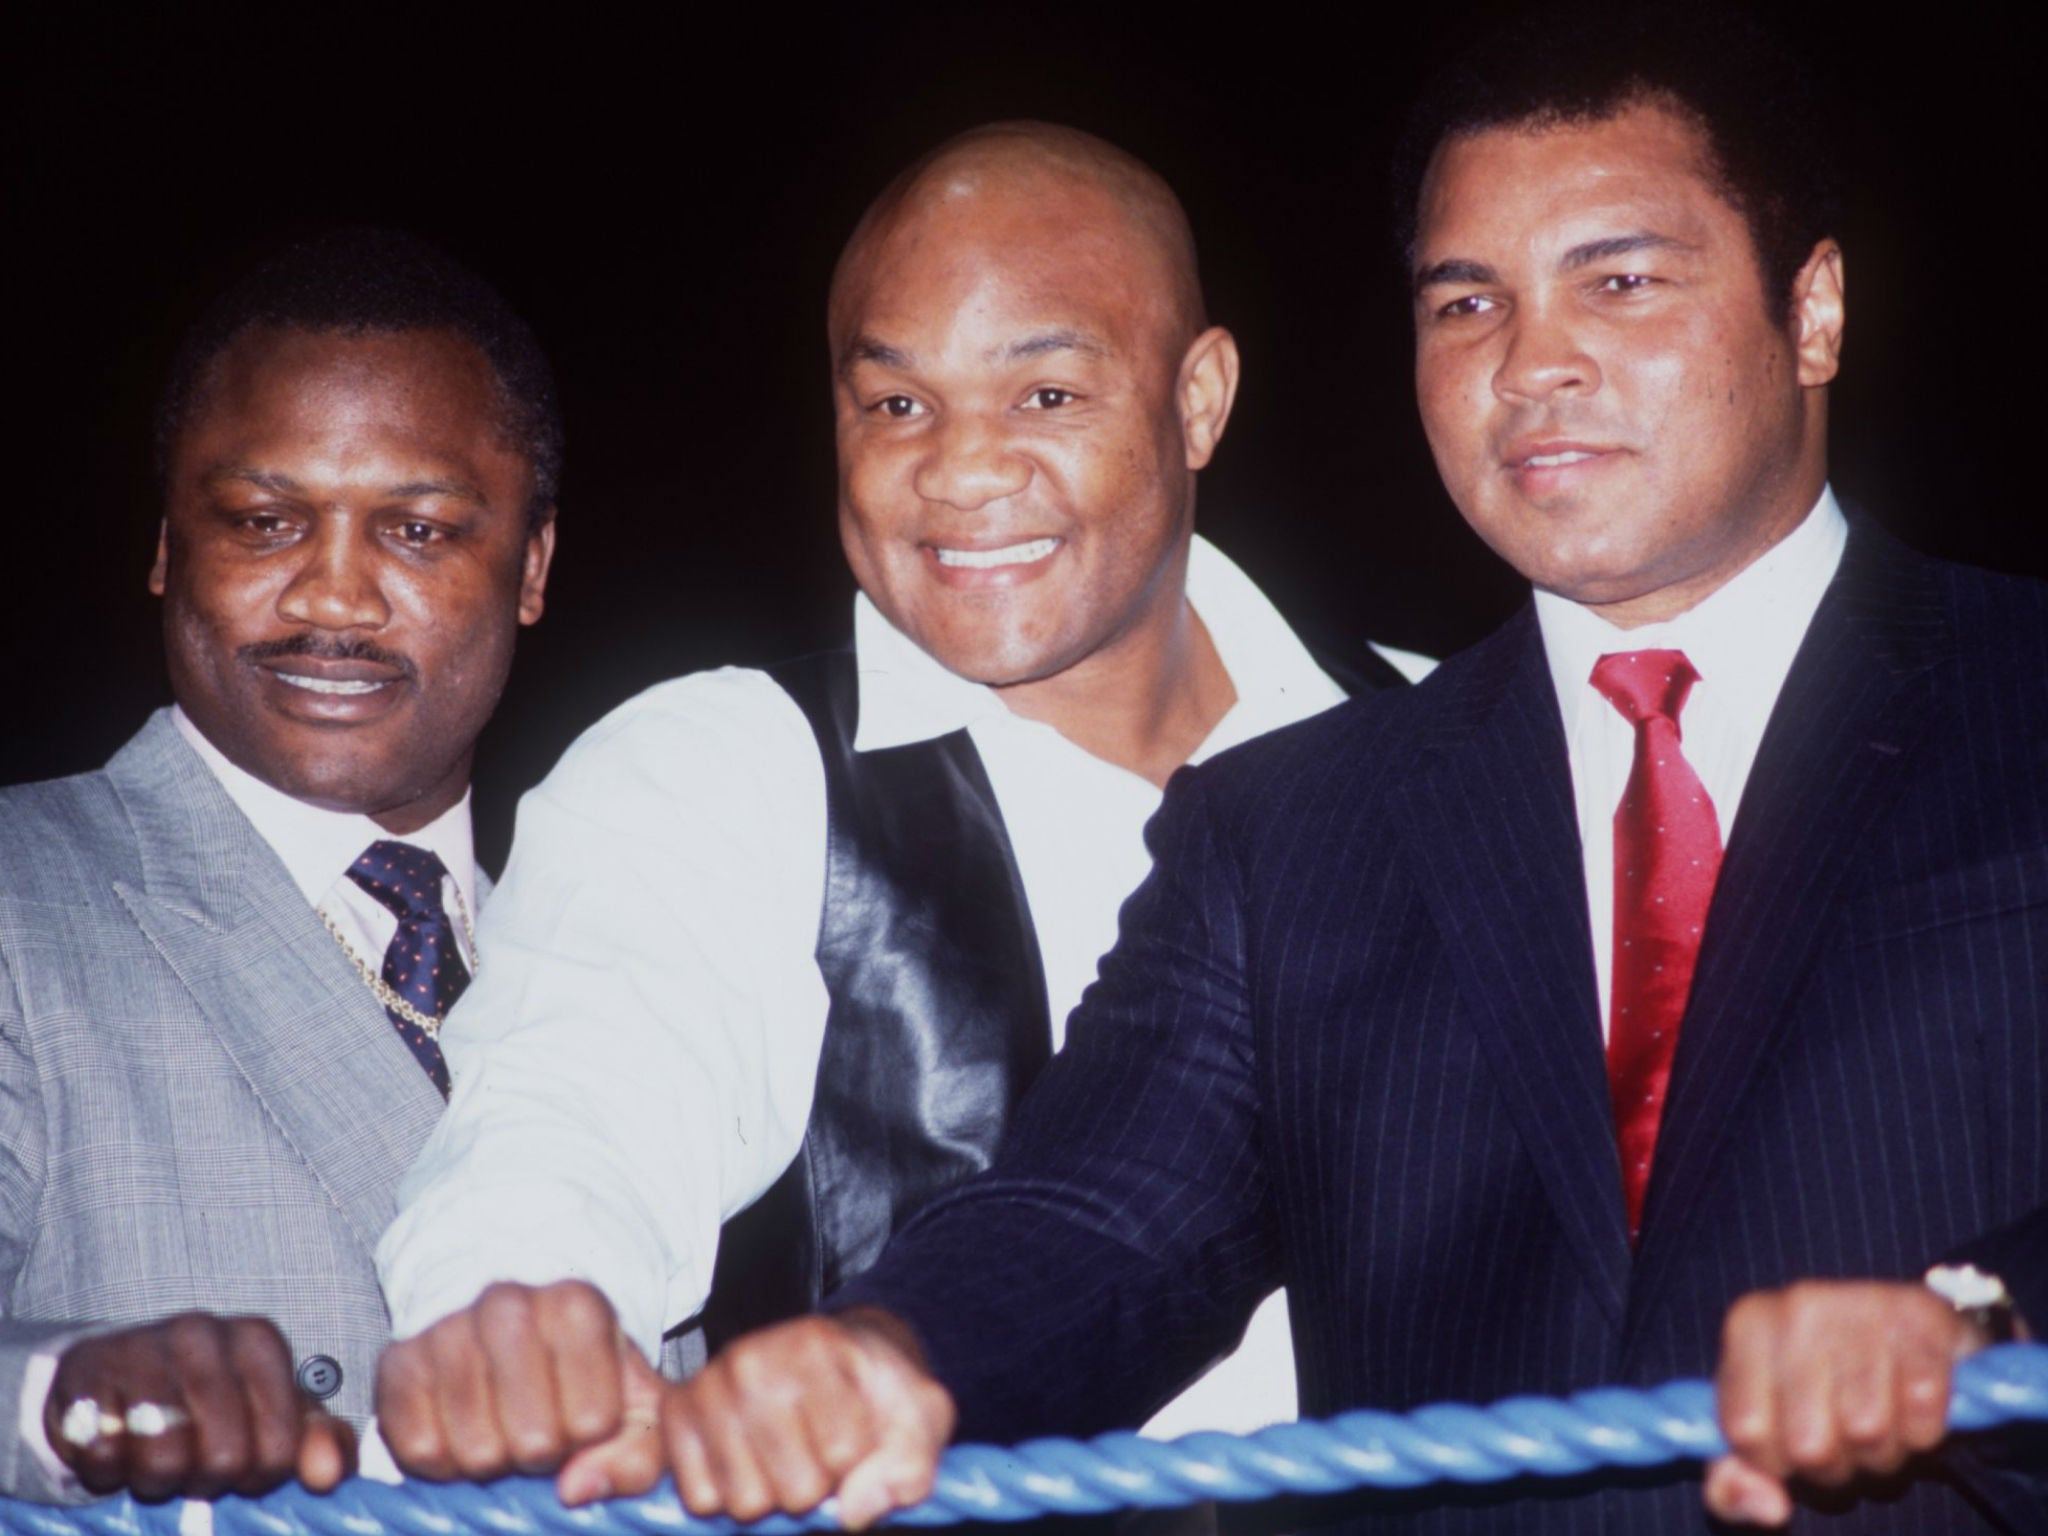 Muhammad Ali dies aged 74: George Foreman, Mike Tyson and Floyd Mayweather lead the tributes